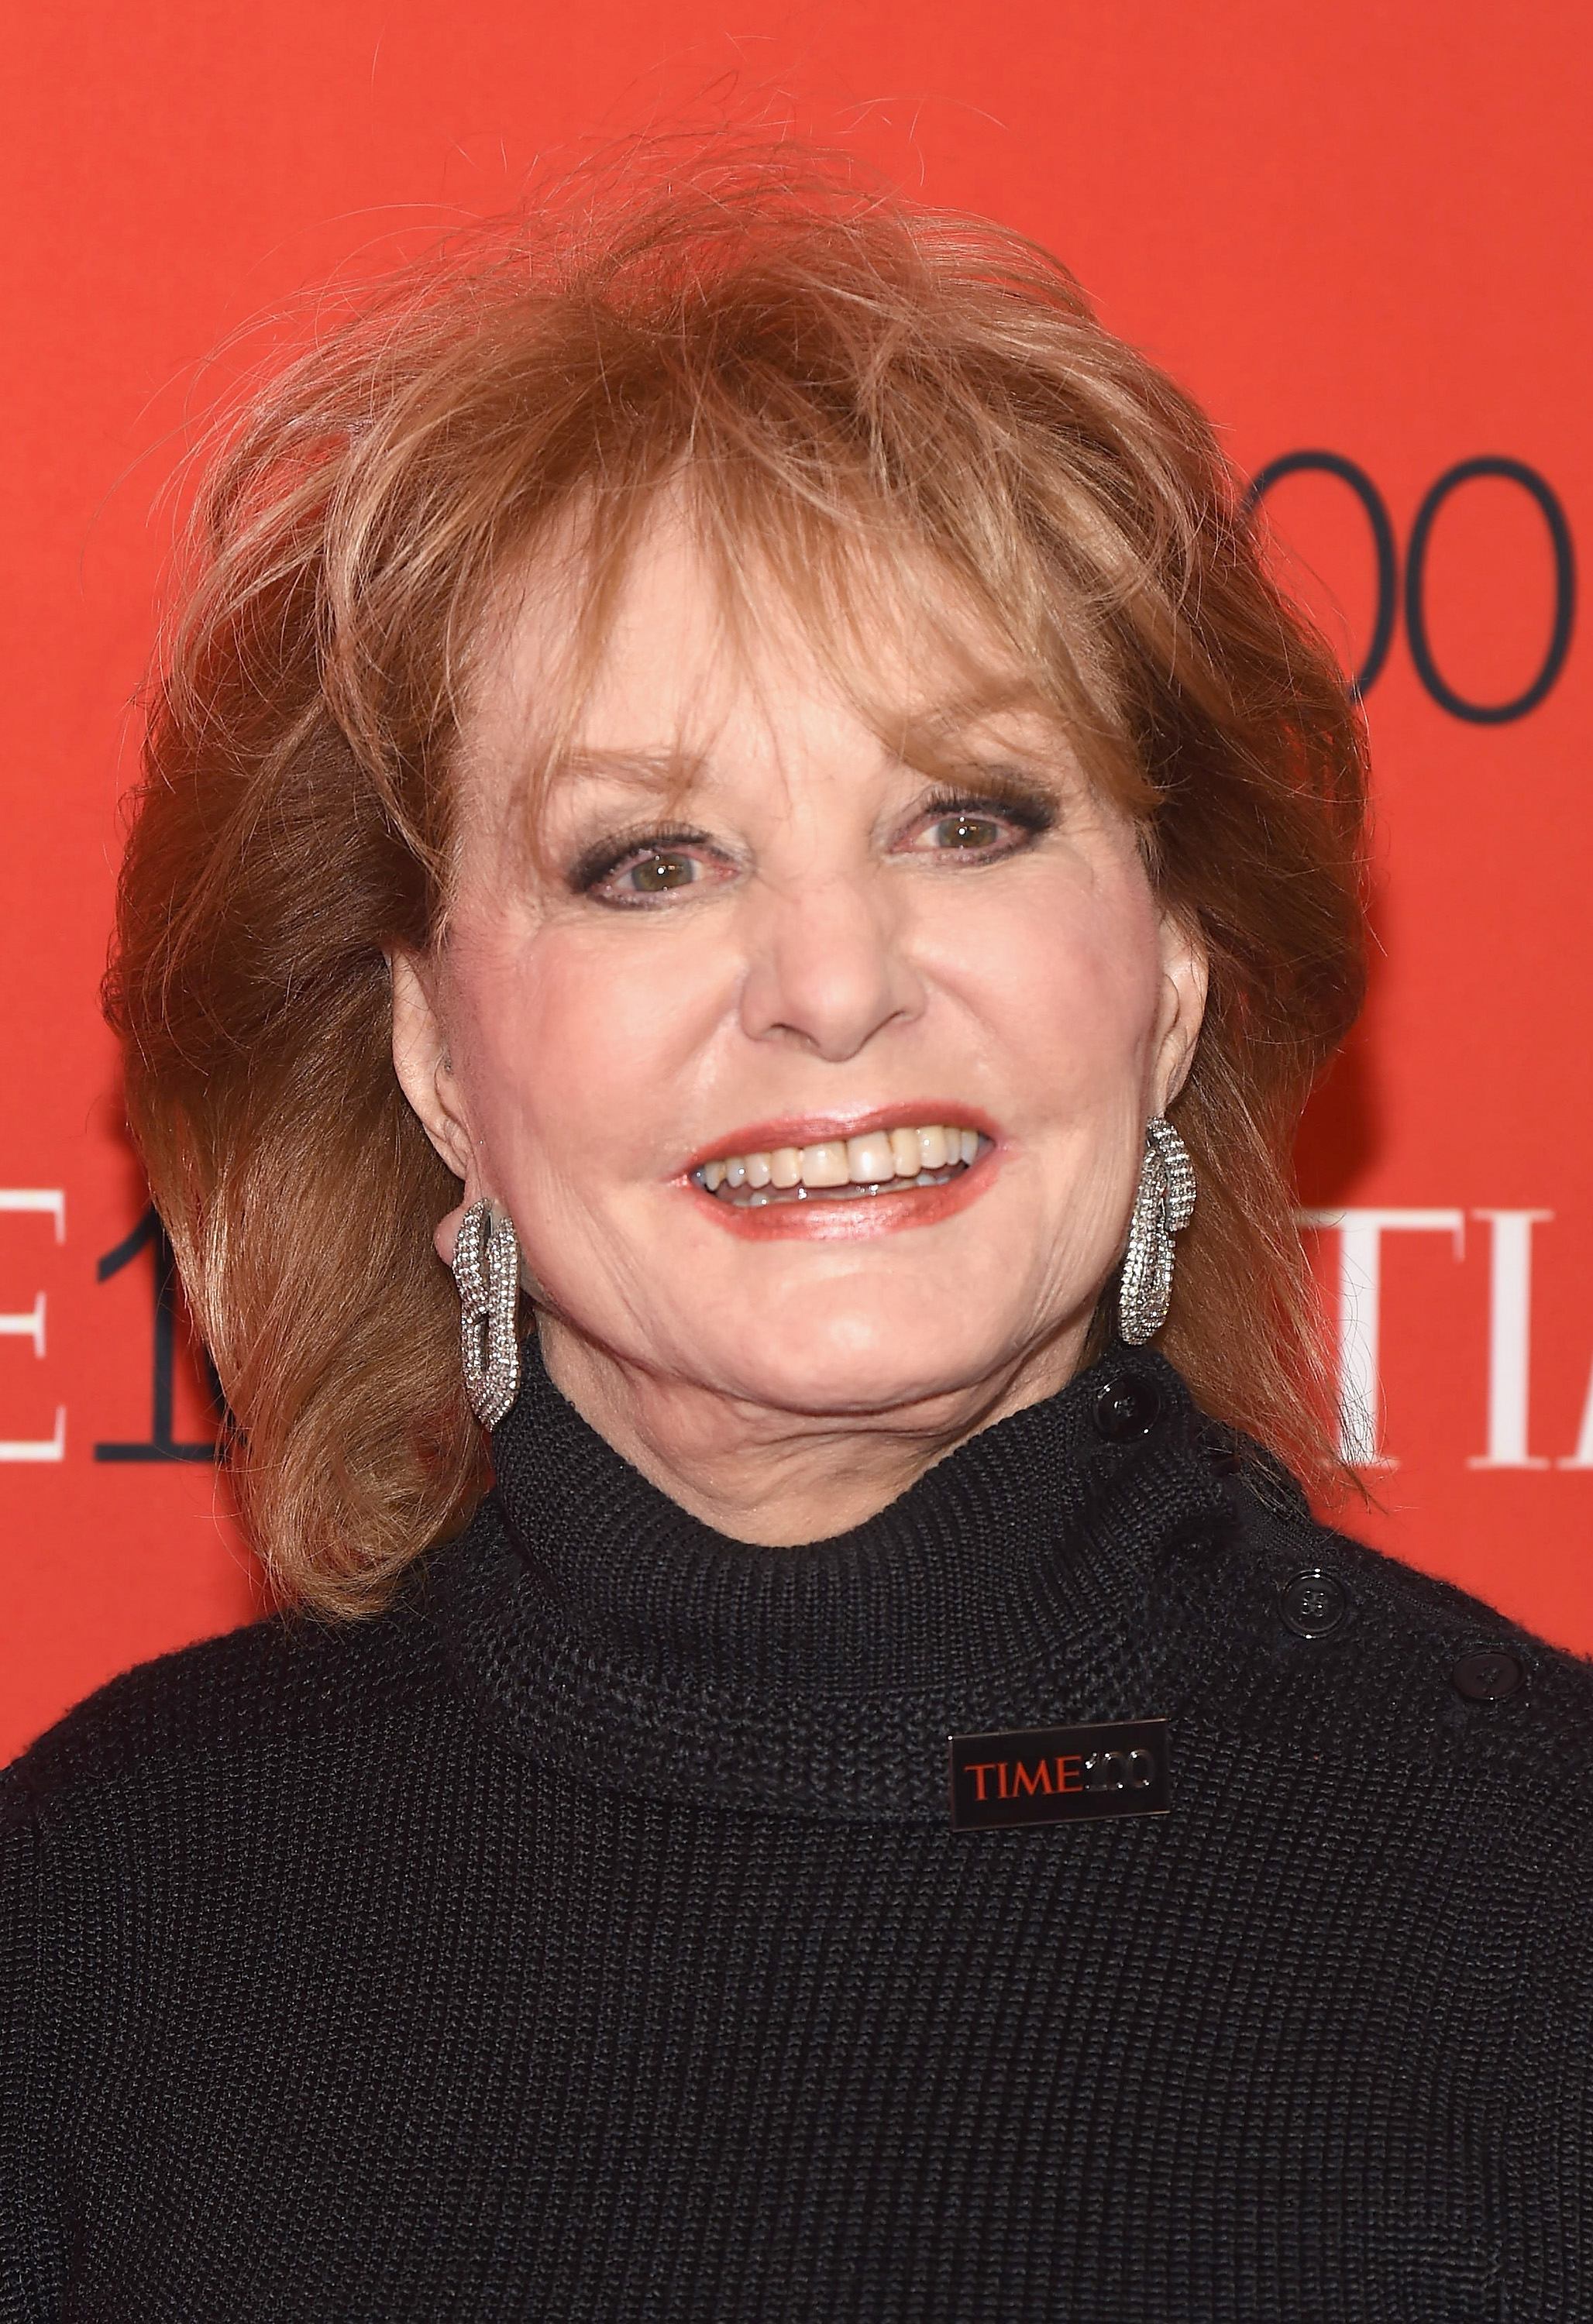 Barbara Walters at TIME 100 Gala in New York City on April 21, 2015.